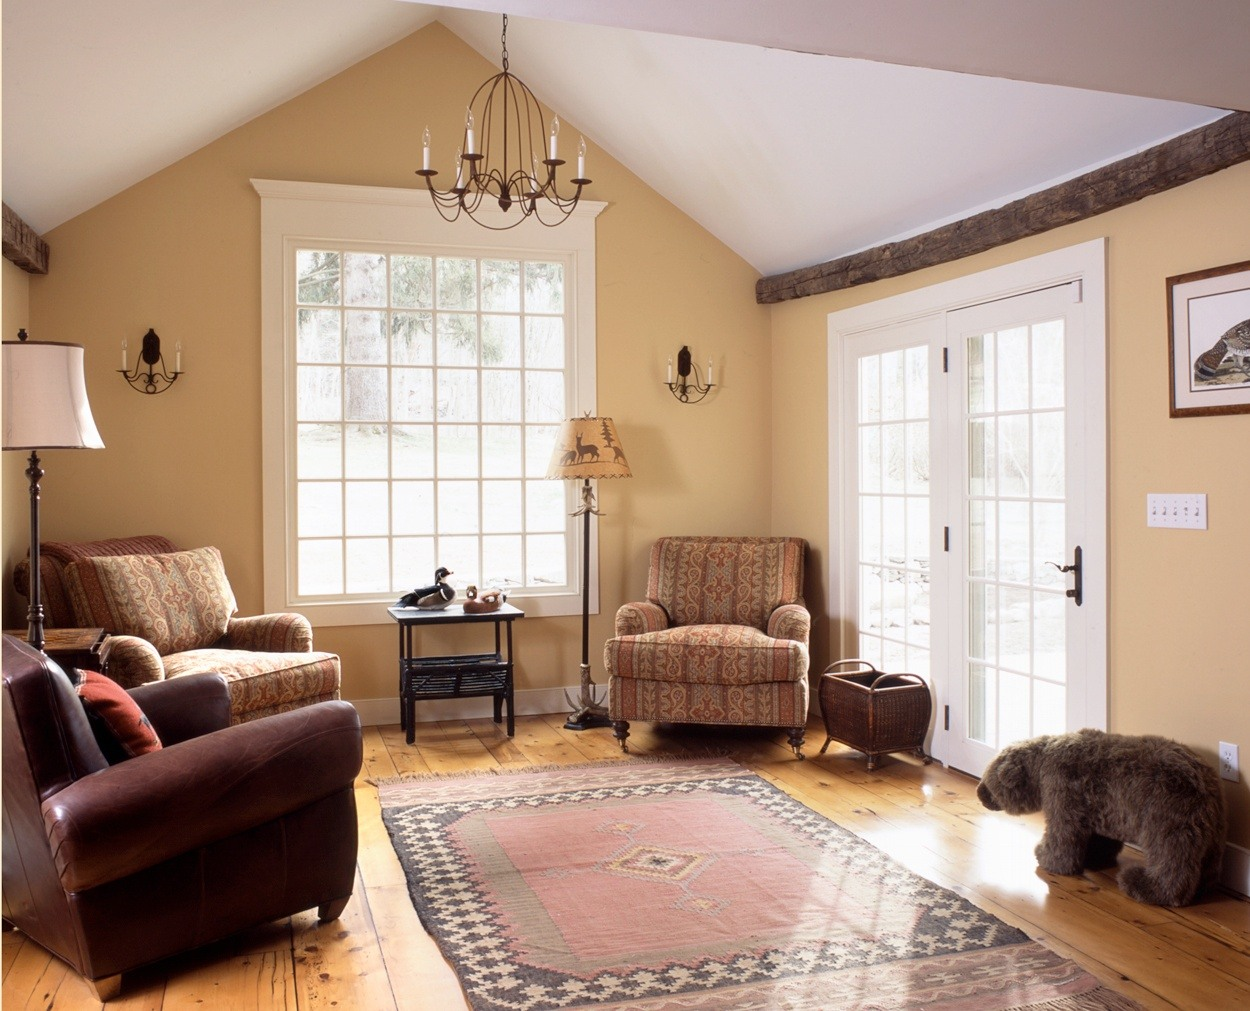 Stuffed bear in great room with large picture window and vintage beams.